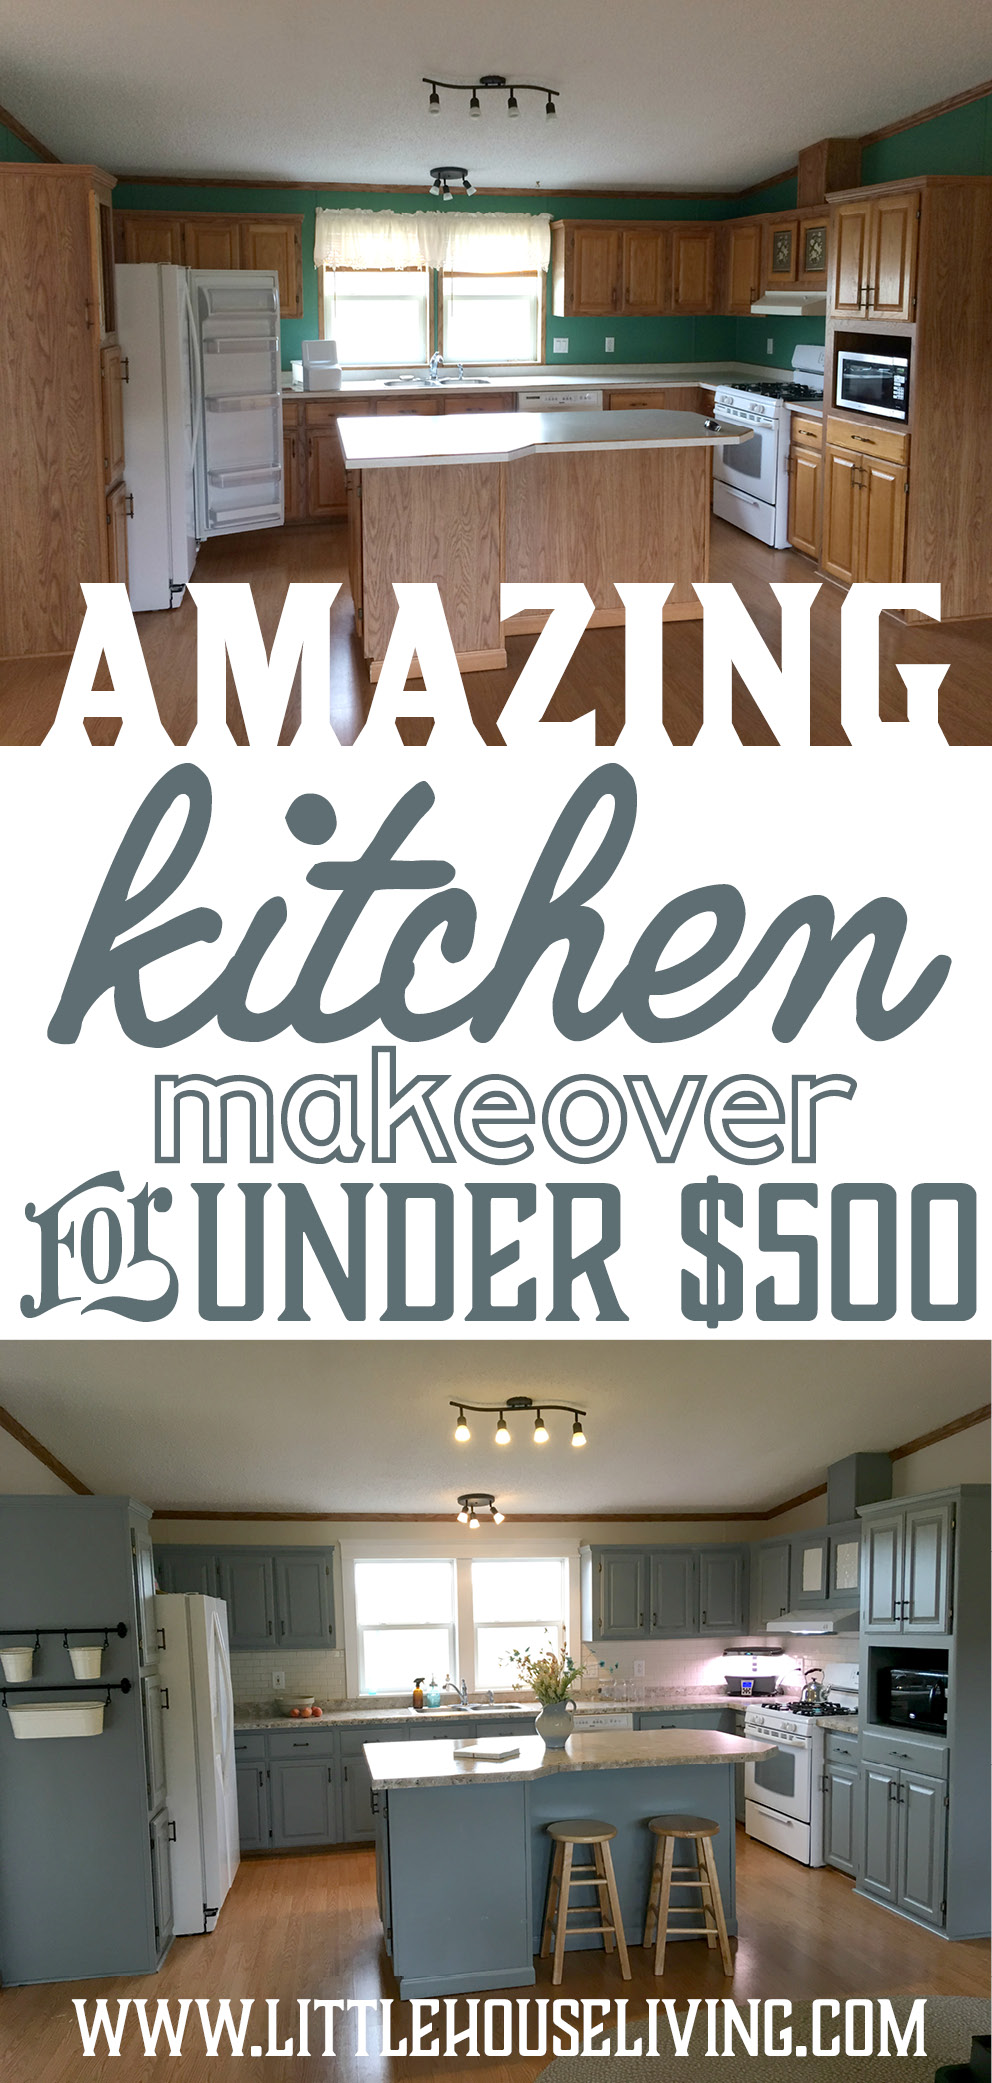 Don't believe that you can makeover your entire kitchen on a budget? This will show you how's it possible to completely revamp your kitchen for less! #farmhousekitchen #kitchenremodel #designonadime #kitchenrenovation #kitchenmakeover #cheapkitchenremodel #inexpensivekitchen